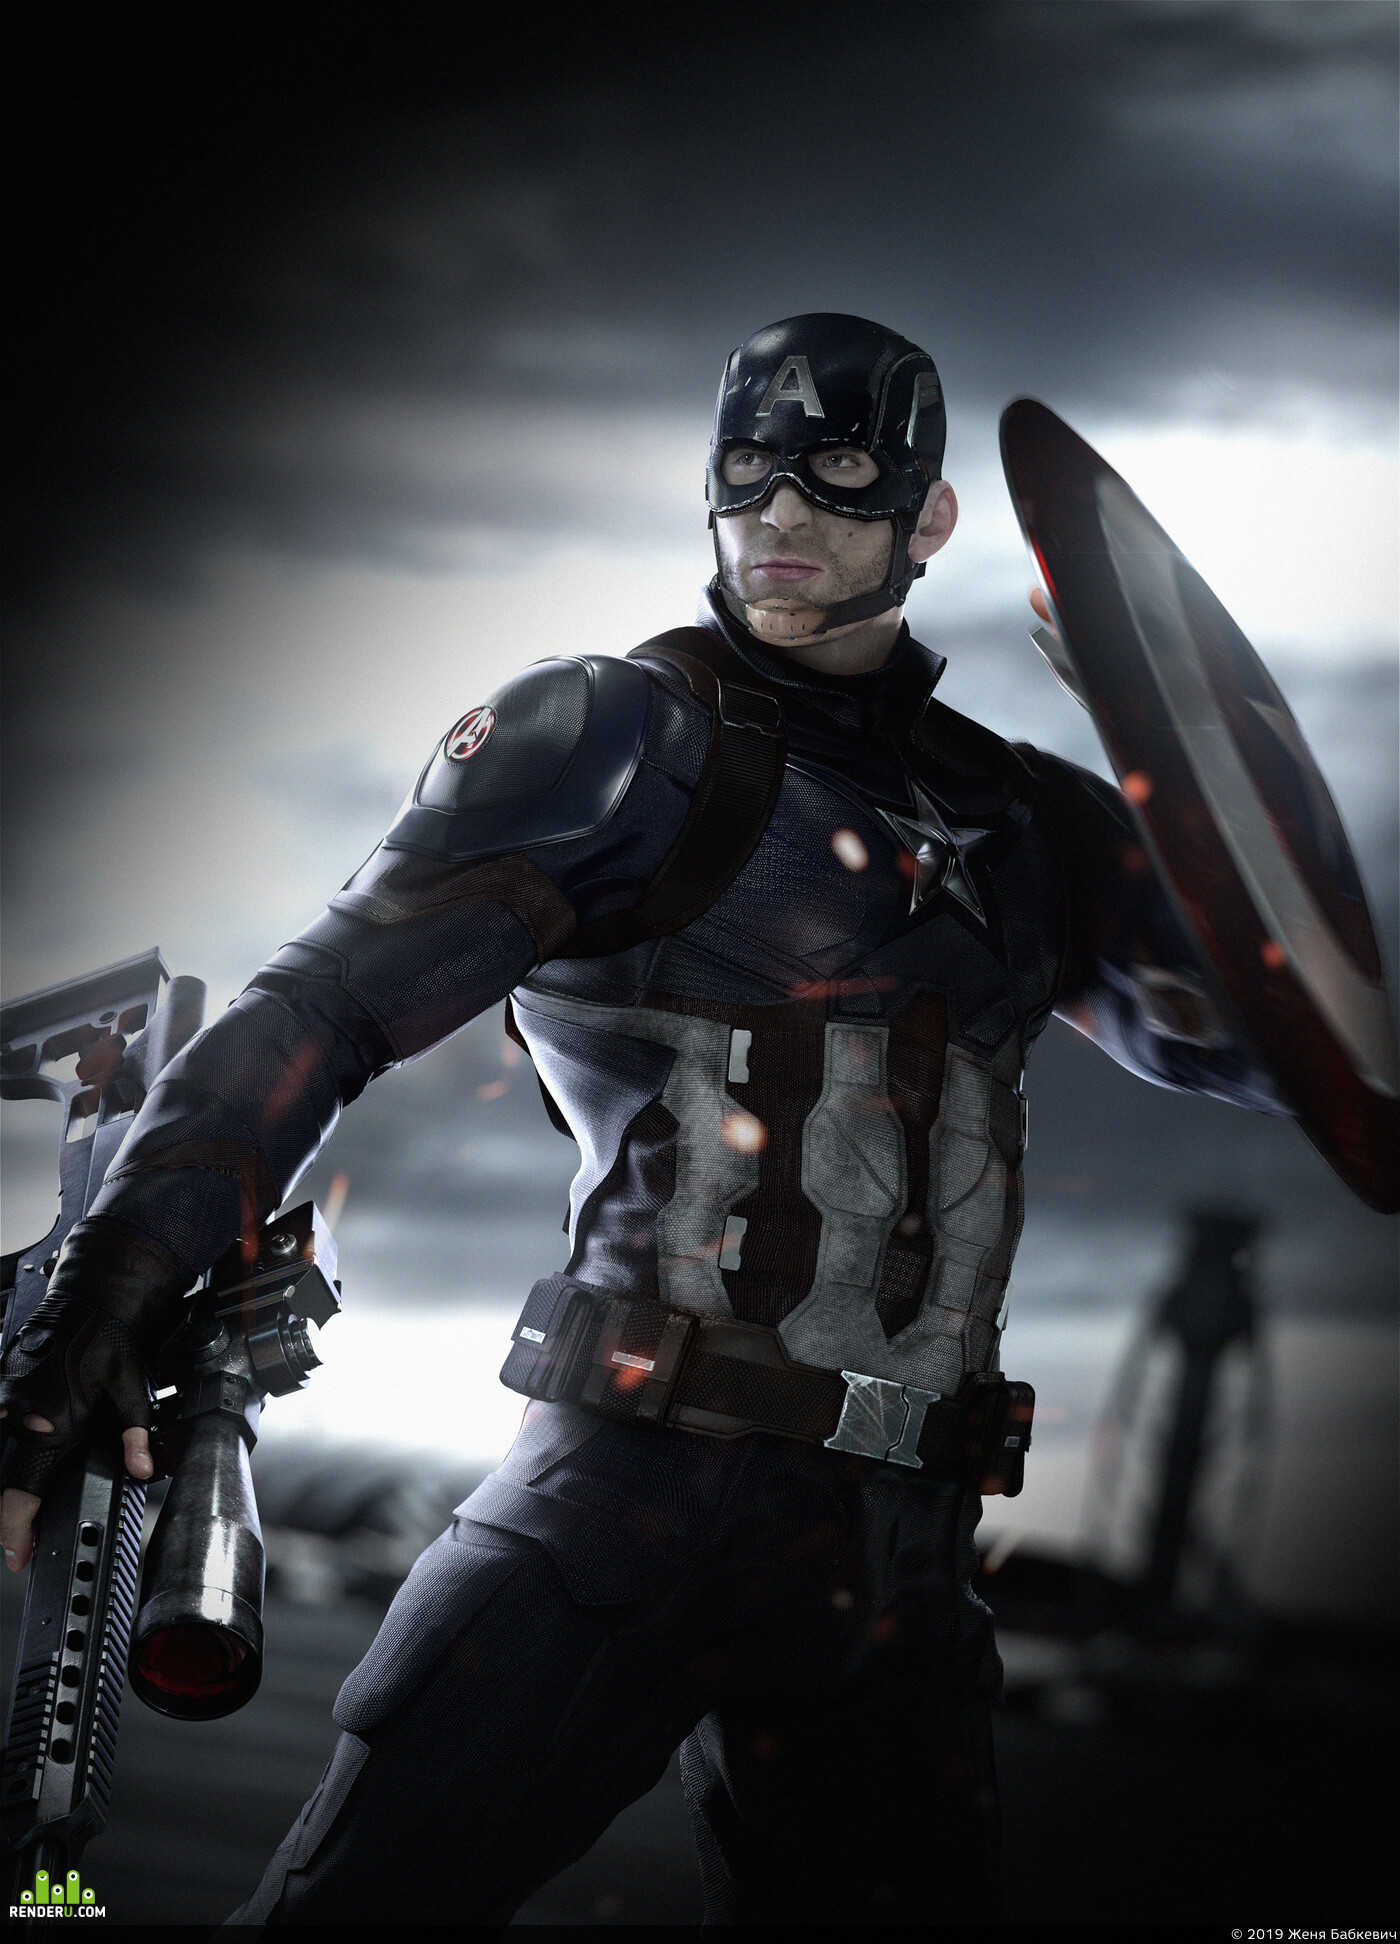 CaptainAmerica, CivilWar, The avengers, The first avenger, soildier, weapon, airport, M98B